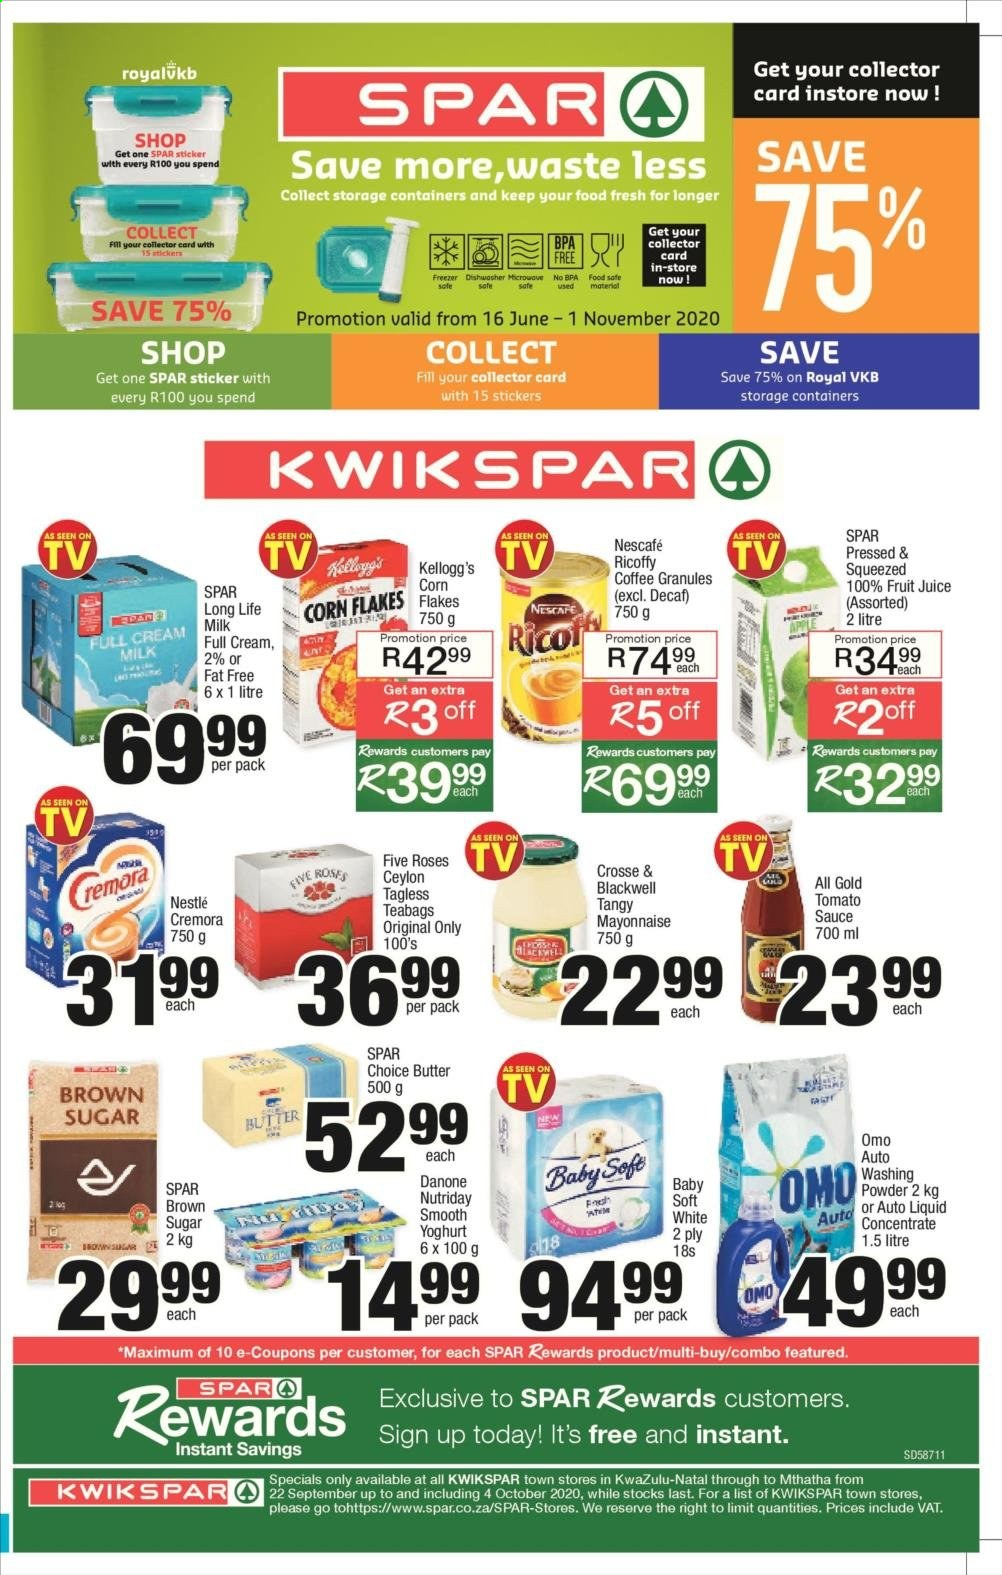 SPAR catalogue  - 09.22.2020 - 10.04.2020 - Sales products - brown sugar, butter, coffee, corn, cream, dishwasher, freezer, mayonnaise, microwave oven, milk, nestlé, stickers, sugar, tomato sauce, roses, yoghurt, danone, corn flakes, fruit juice, ricoffy, cremora, teabags, juice, sauce, flakes, omo, safe, nescafé, washing powder, long life milk, microwave, sticker, storage container, tomato, teabag. Page 1.